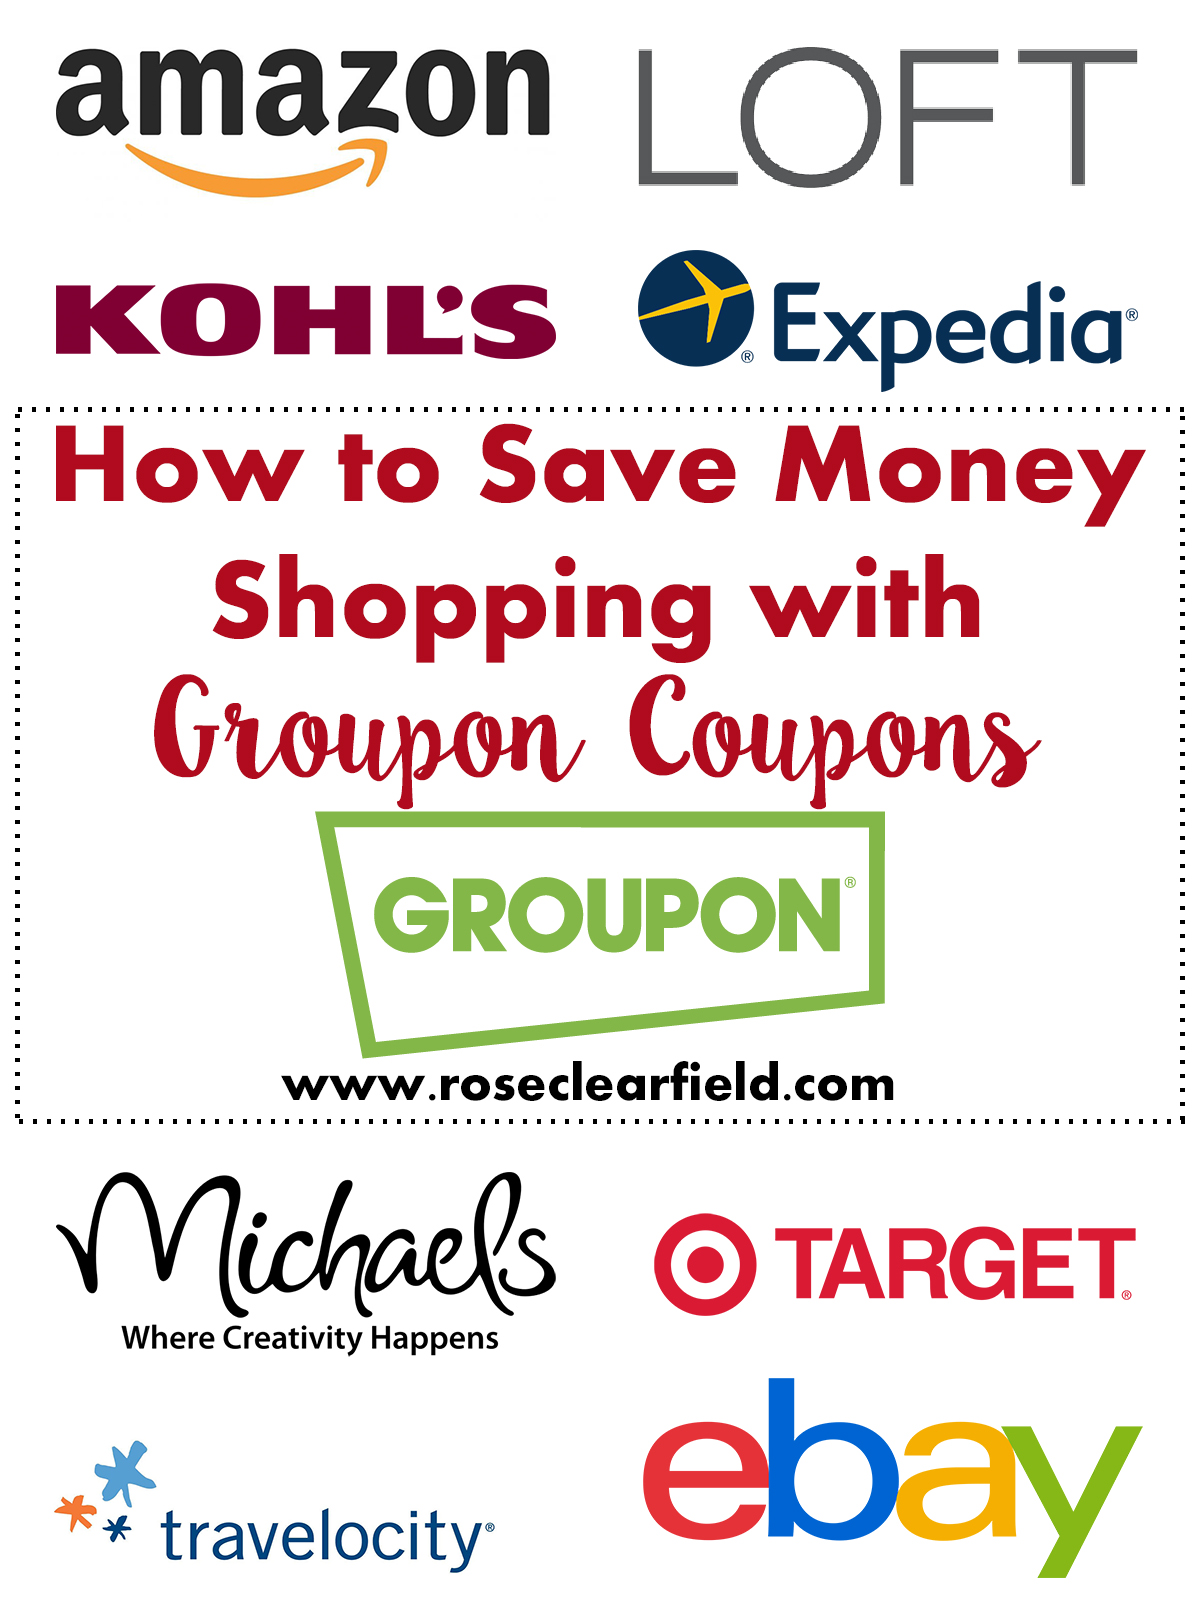 How to Save Money Shopping With Groupon Coupons | http://www.roseclearfield.com